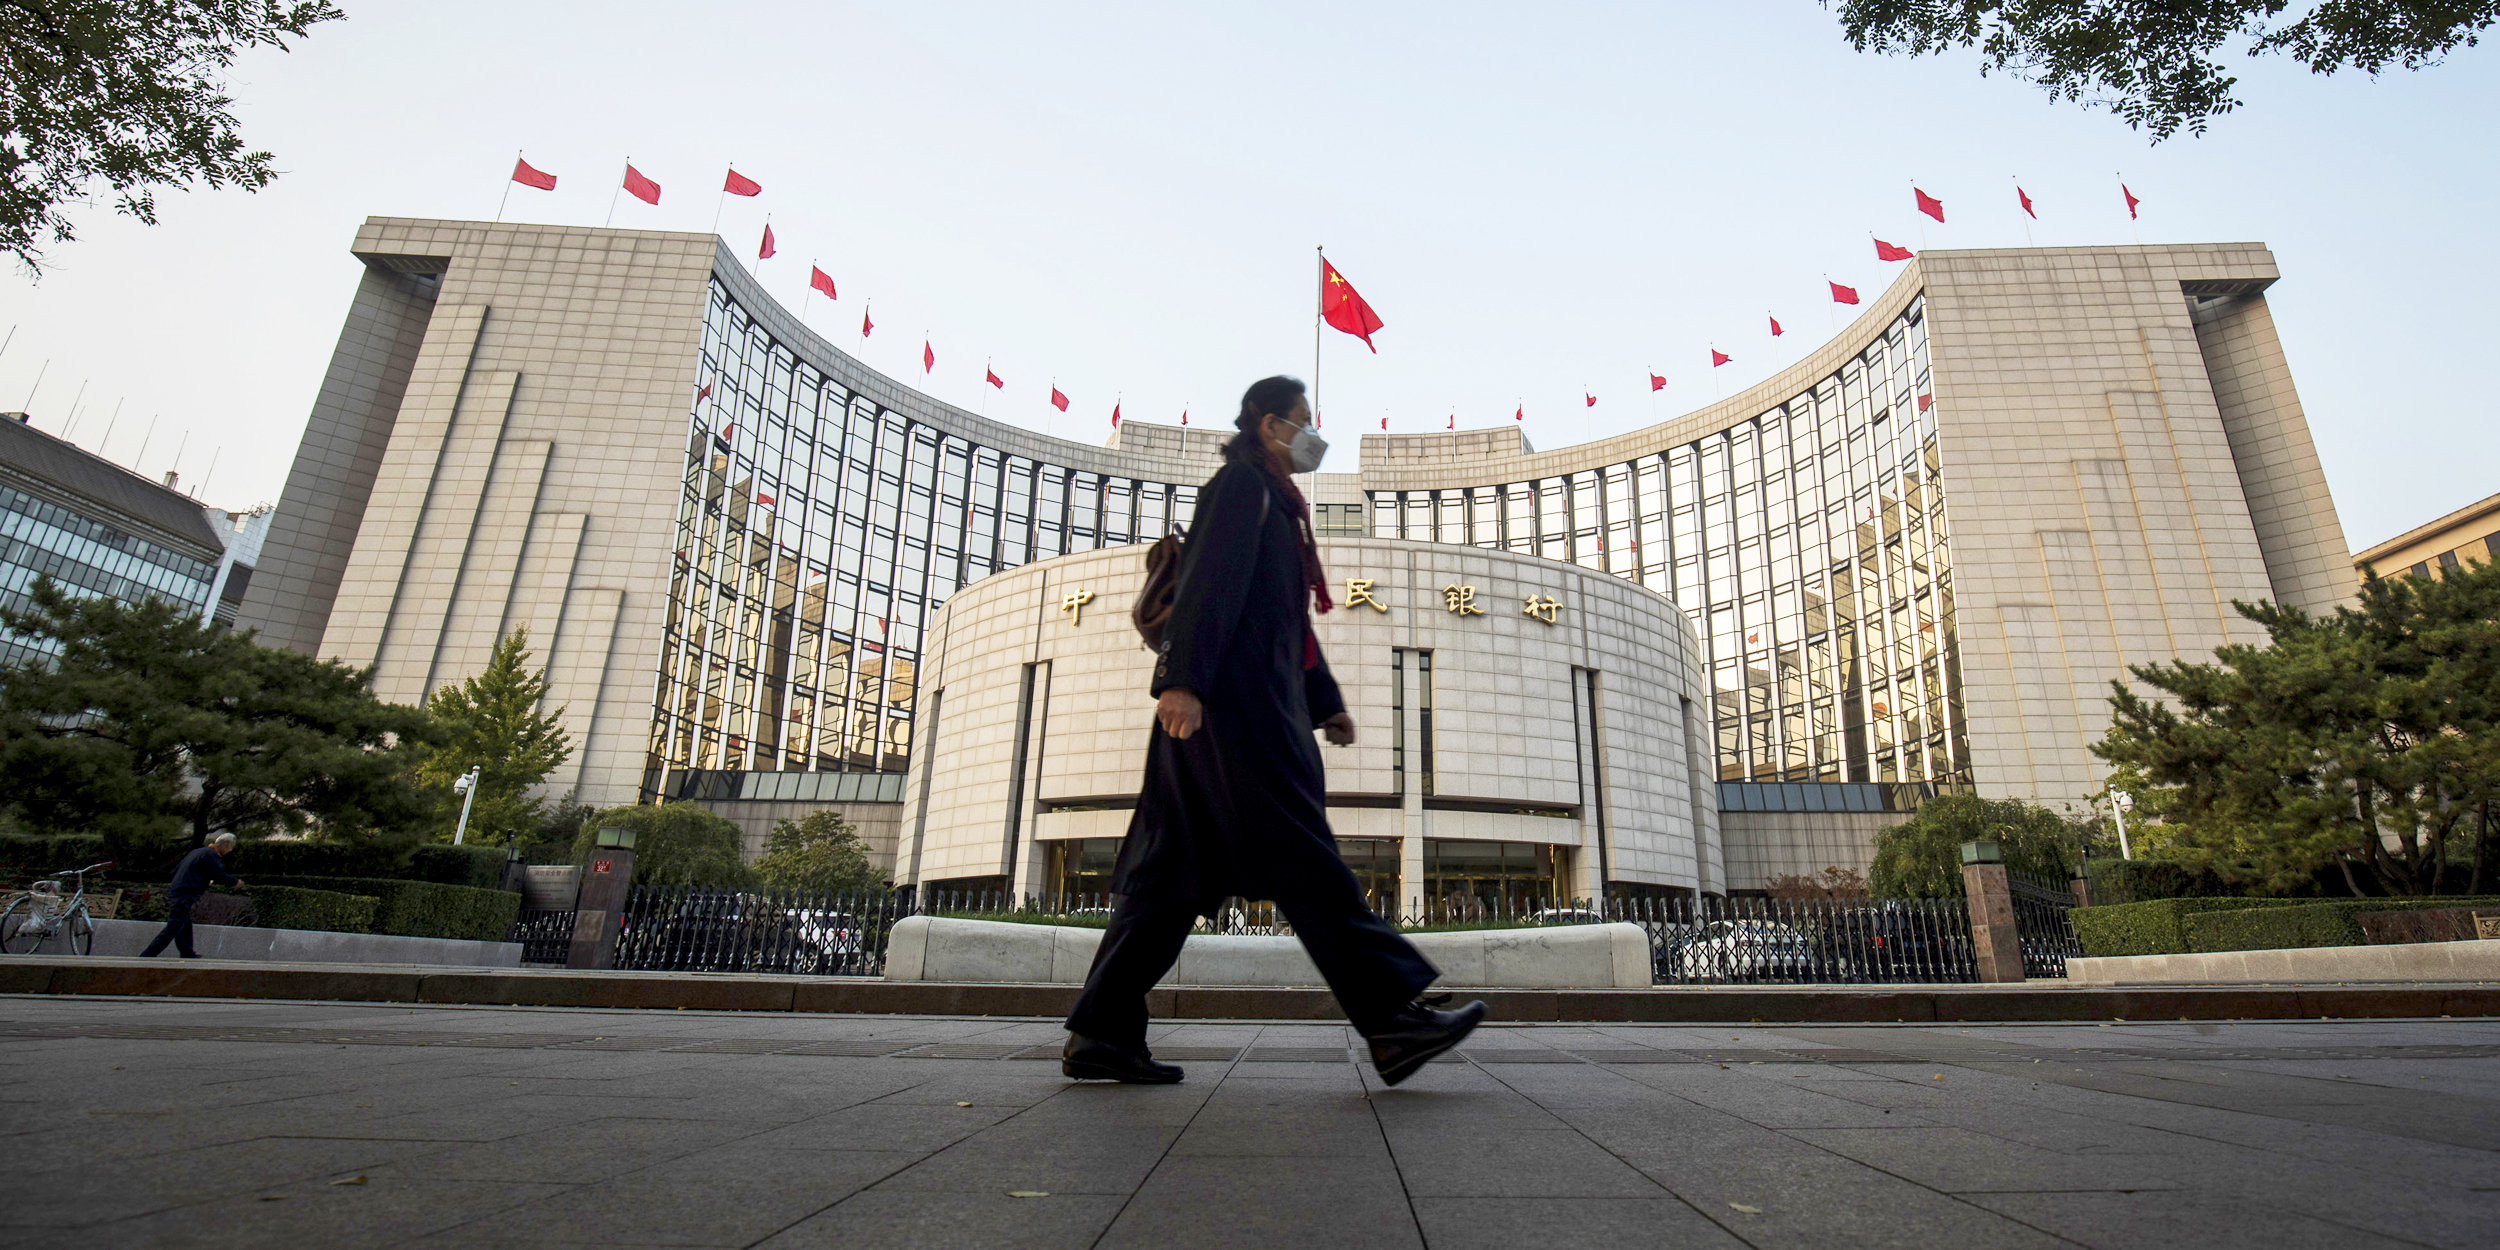 Bitcoin takes a hit as China declares all cryptocurrency transactions illegal